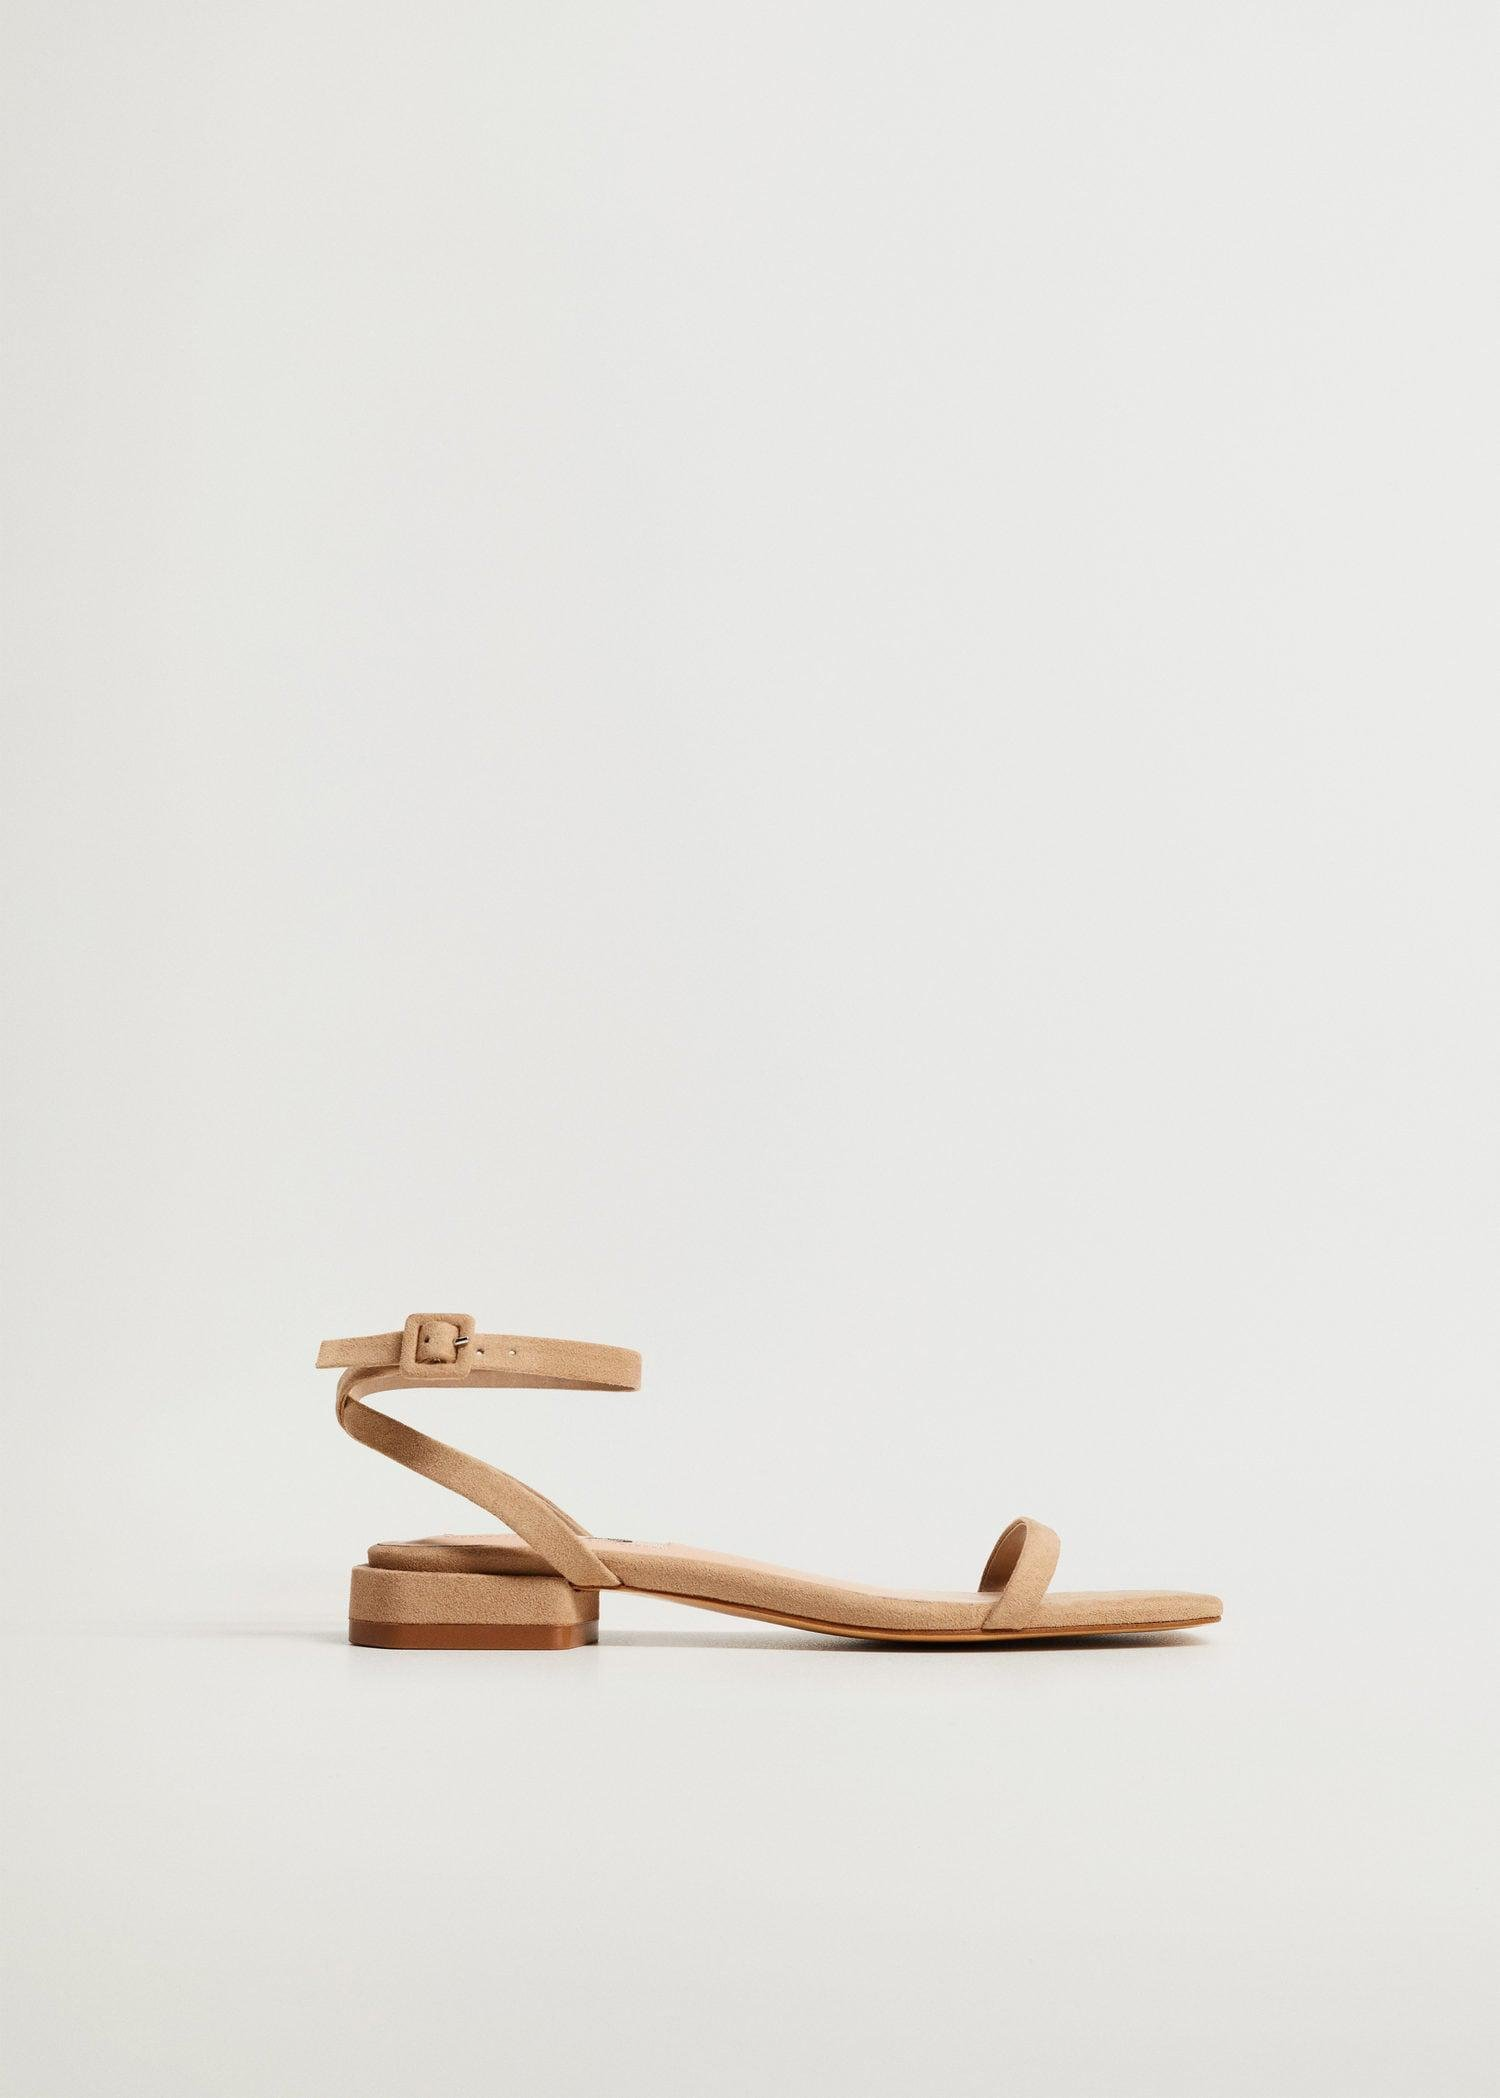 Ankle-cuff sandals